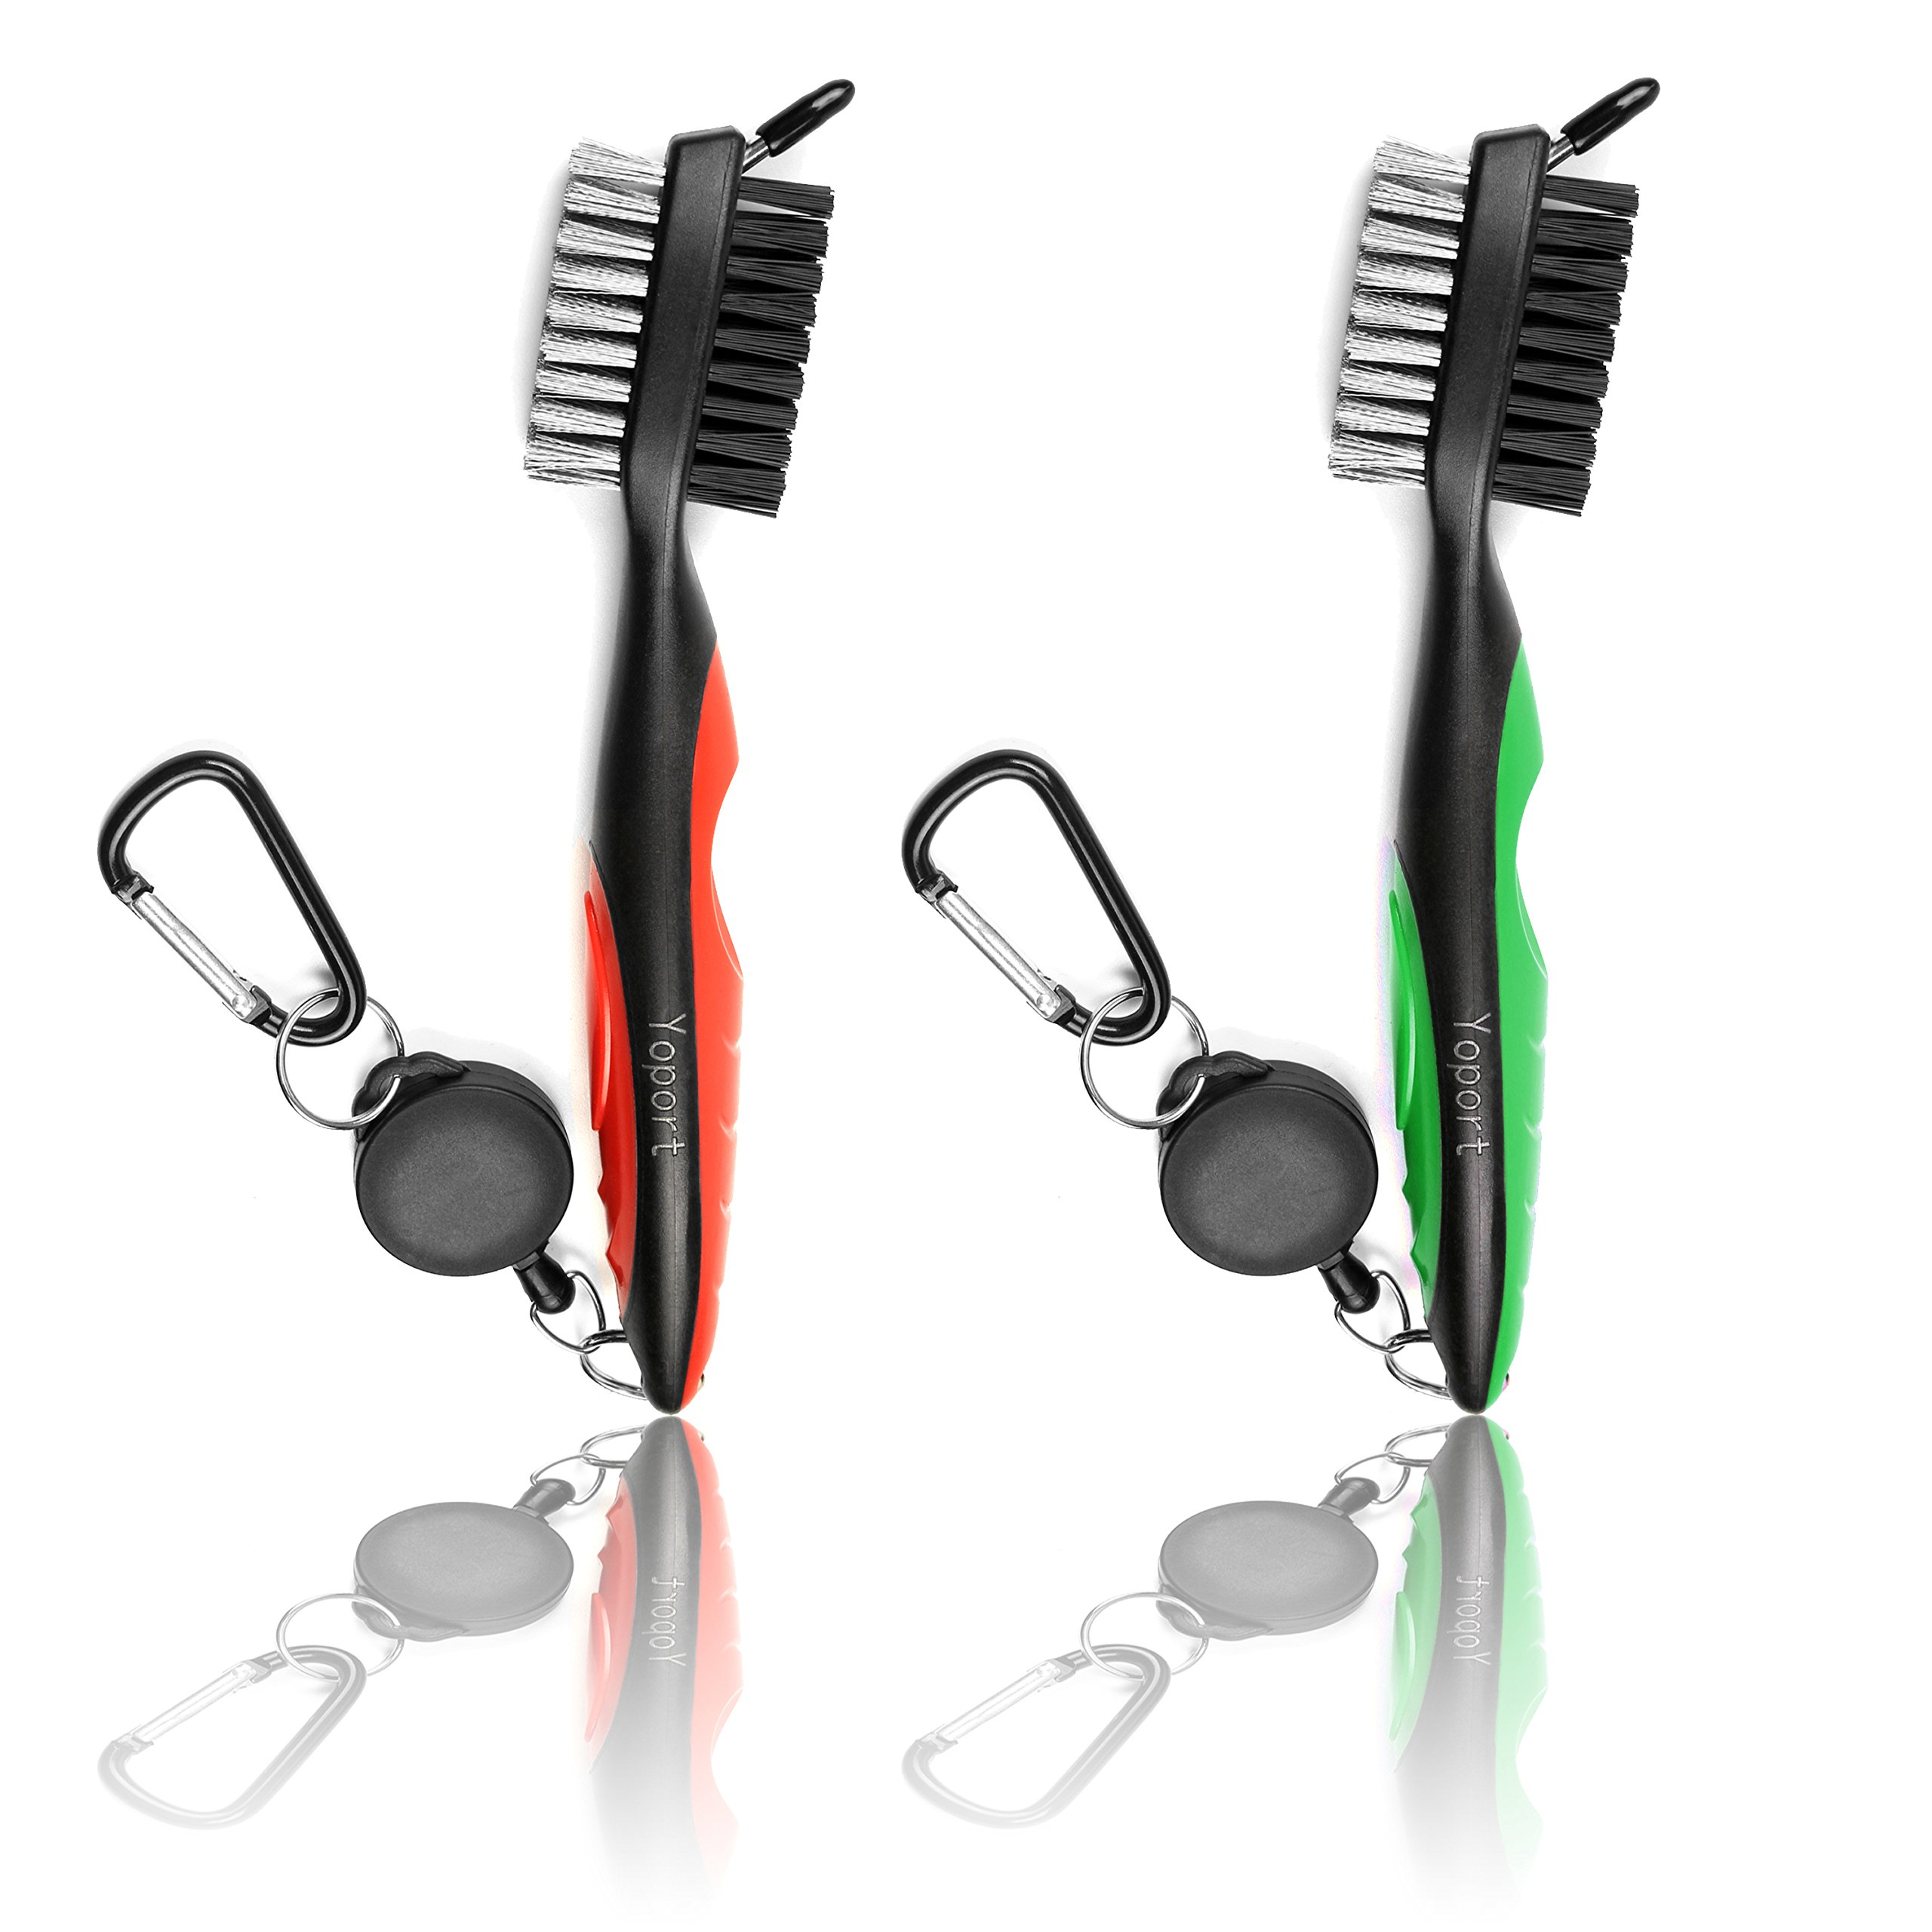 Yoport Two Pack Golf Club Brush and Club Groove Cleaner 2 Ft Retractable Zip-line Aluminum Carabiner, Lightweight and Stylish, Ergonomic Design, Easily Attaches to Golf Bag (red+Green)